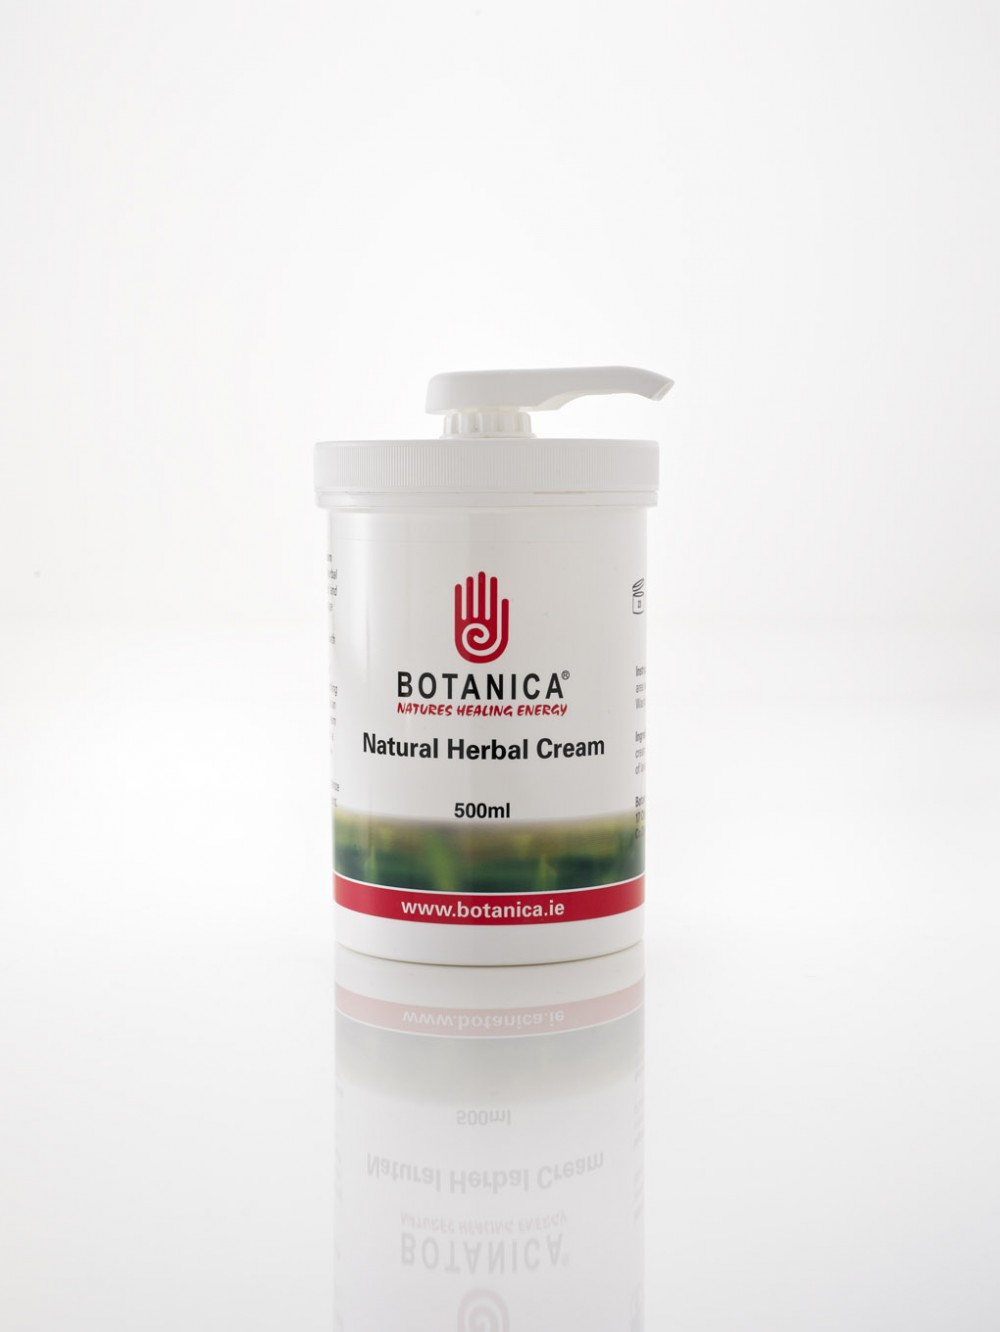 Pro Botanica-Nat Herbal Cream 500ml